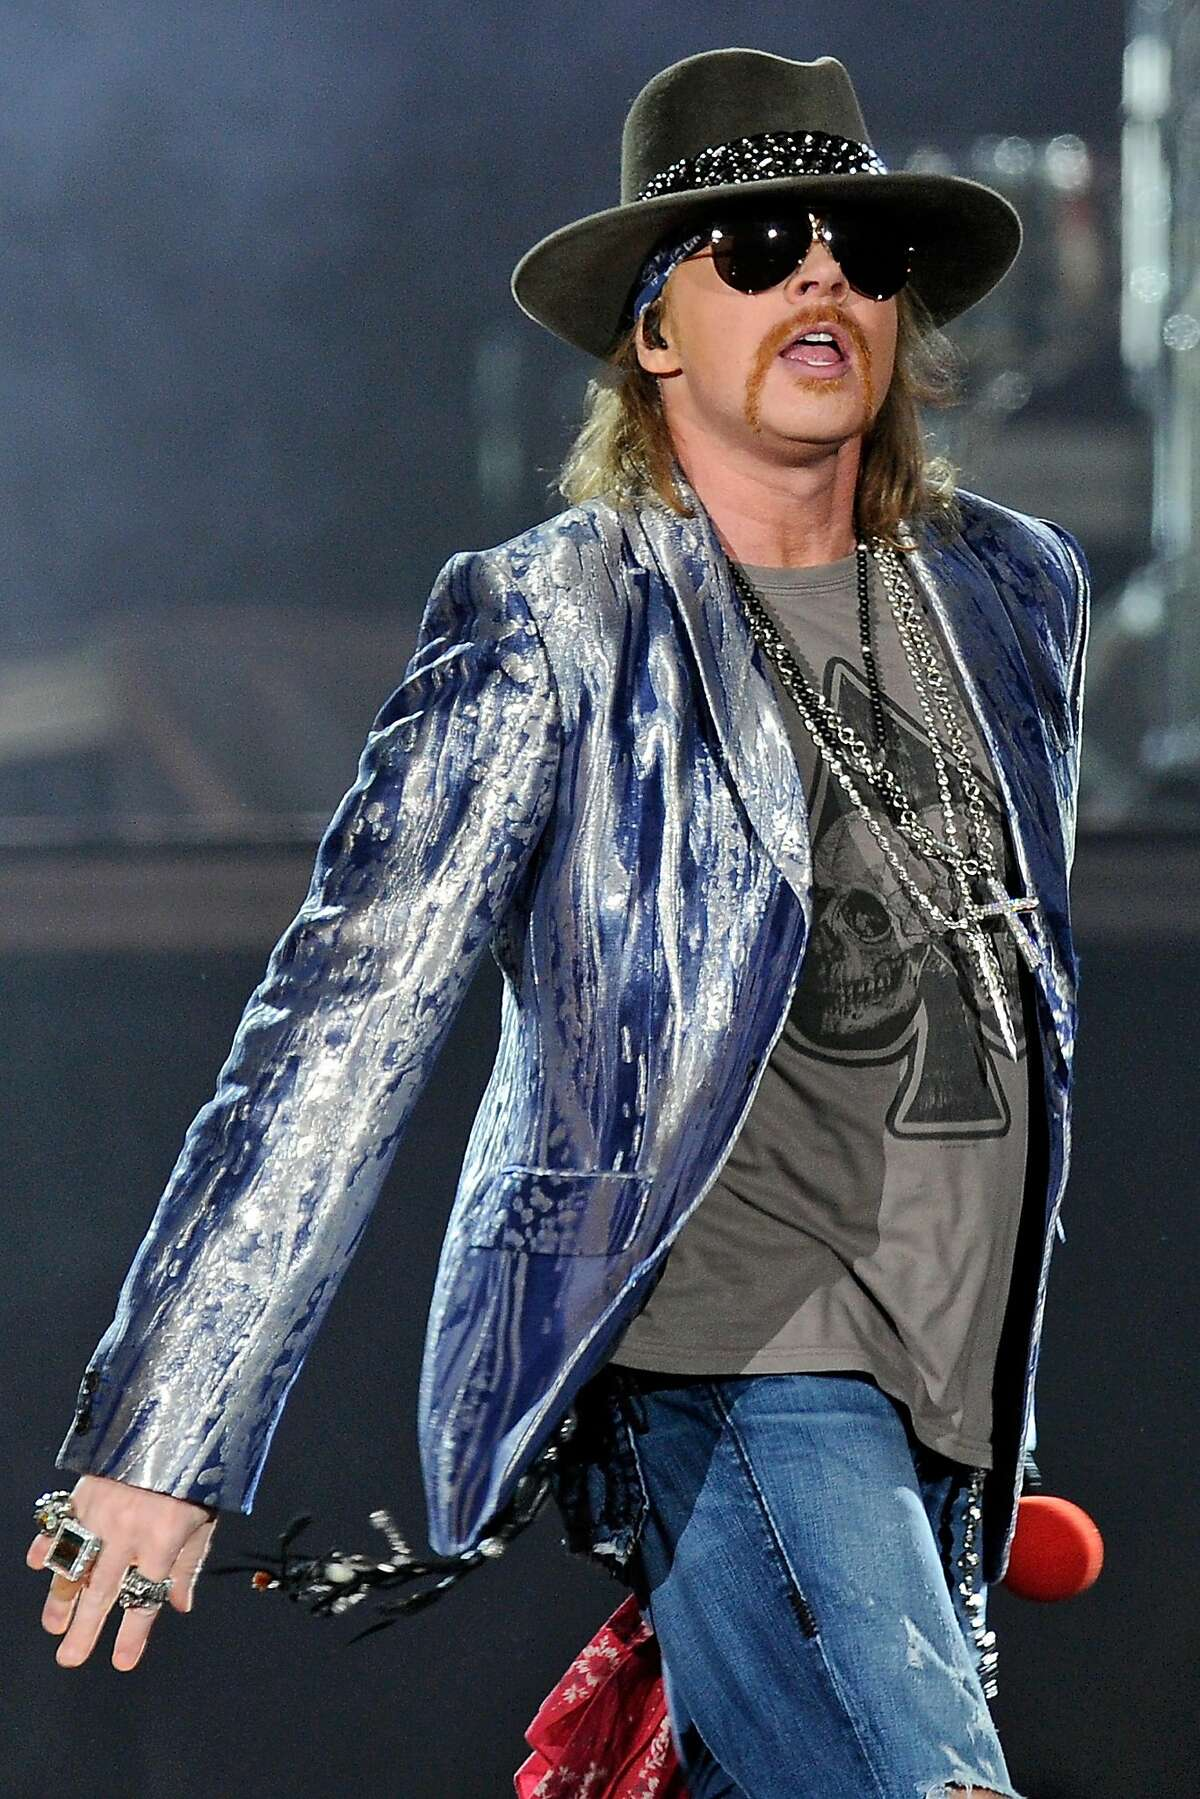 Axl Rose of Guns N' Roses performs at O2 Arena on October 14, 2010 in London, England.